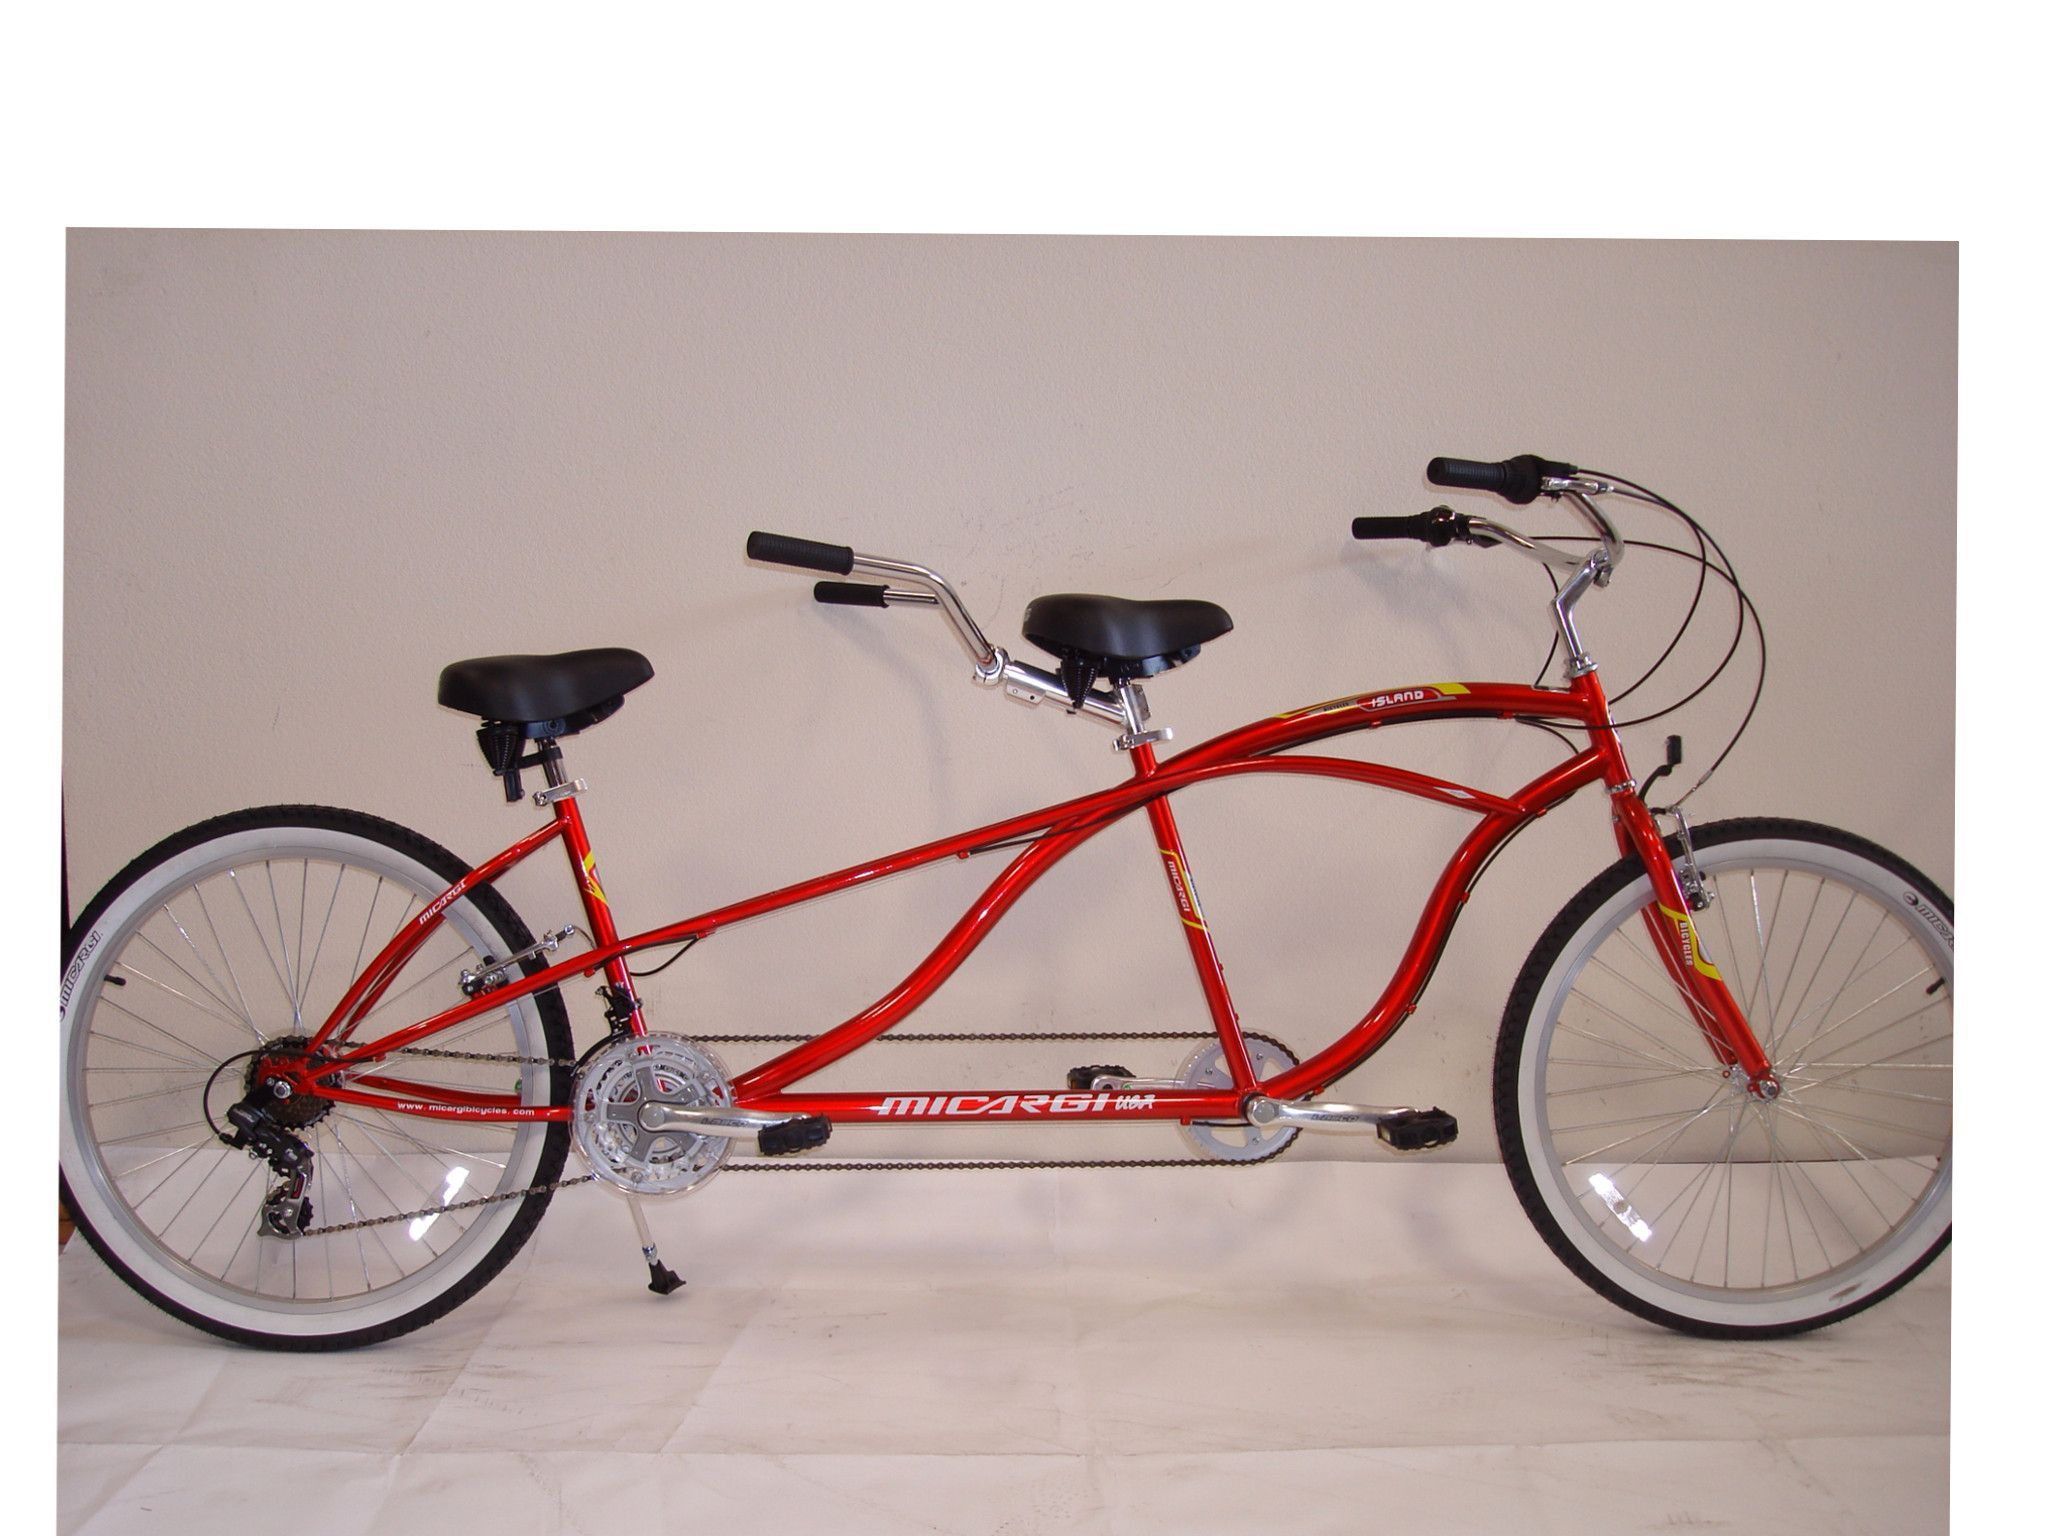 Micargi island 26 tandem beach cruiser shimano 21 speed bike red